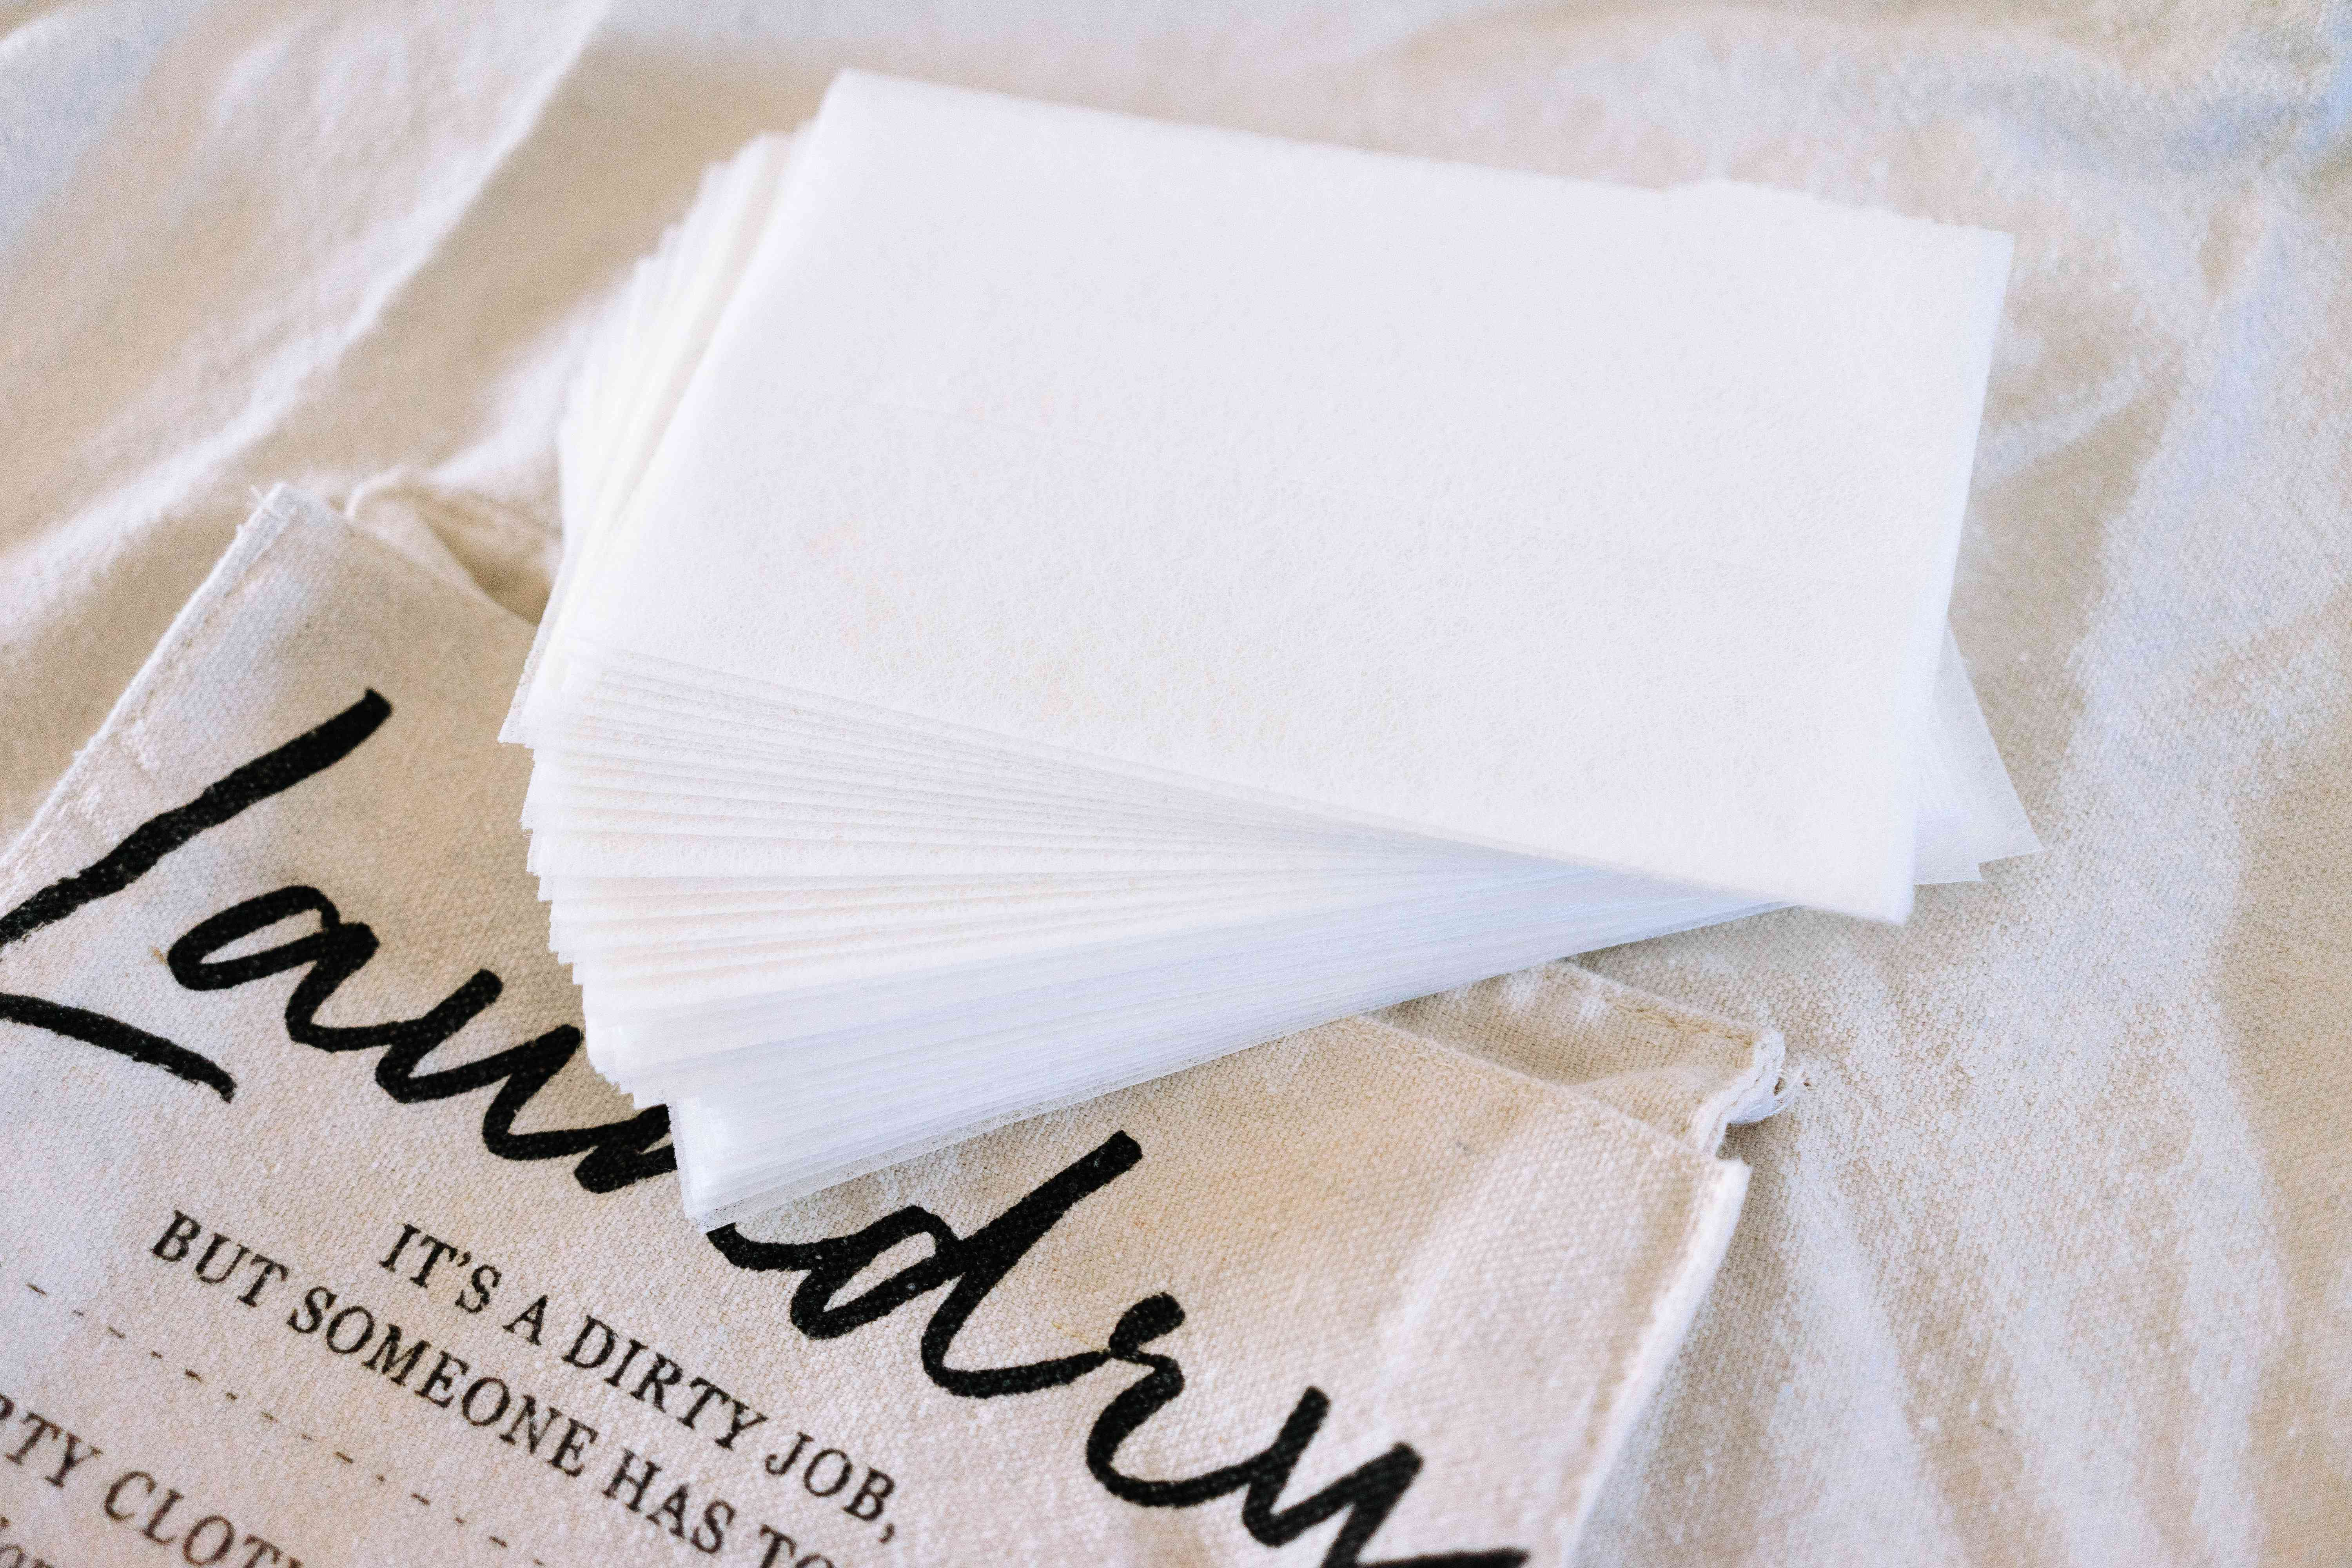 dryer sheets for dirty laundry during a trip